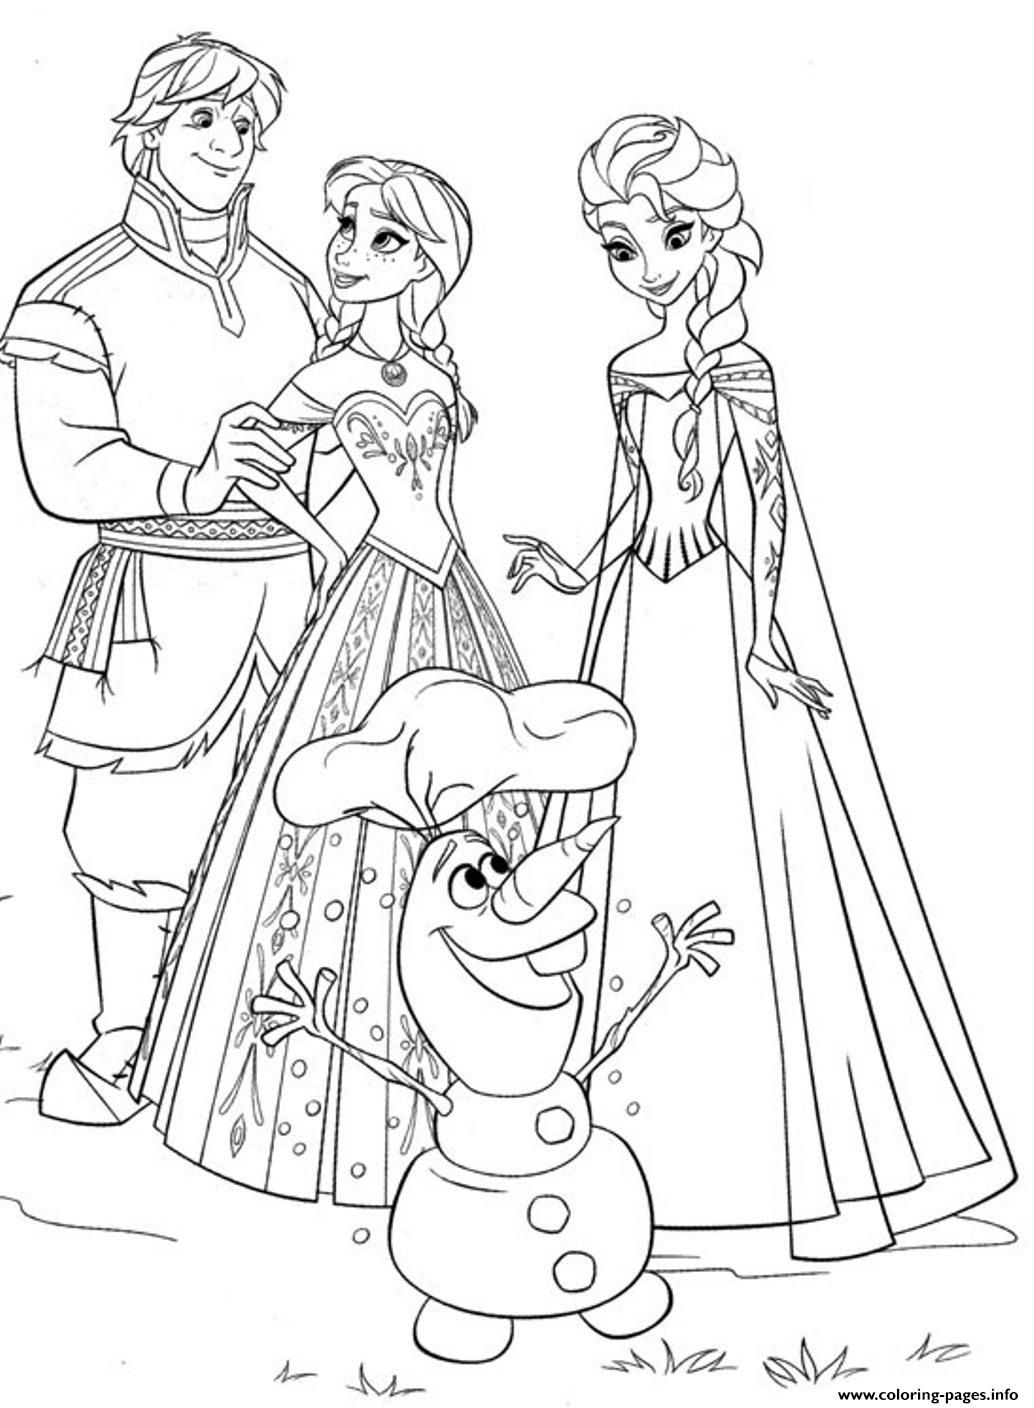 Print Frozen Family4eec Coloring Pages Frozen Coloring Pages Kids Coloring Books Disney Coloring Pages